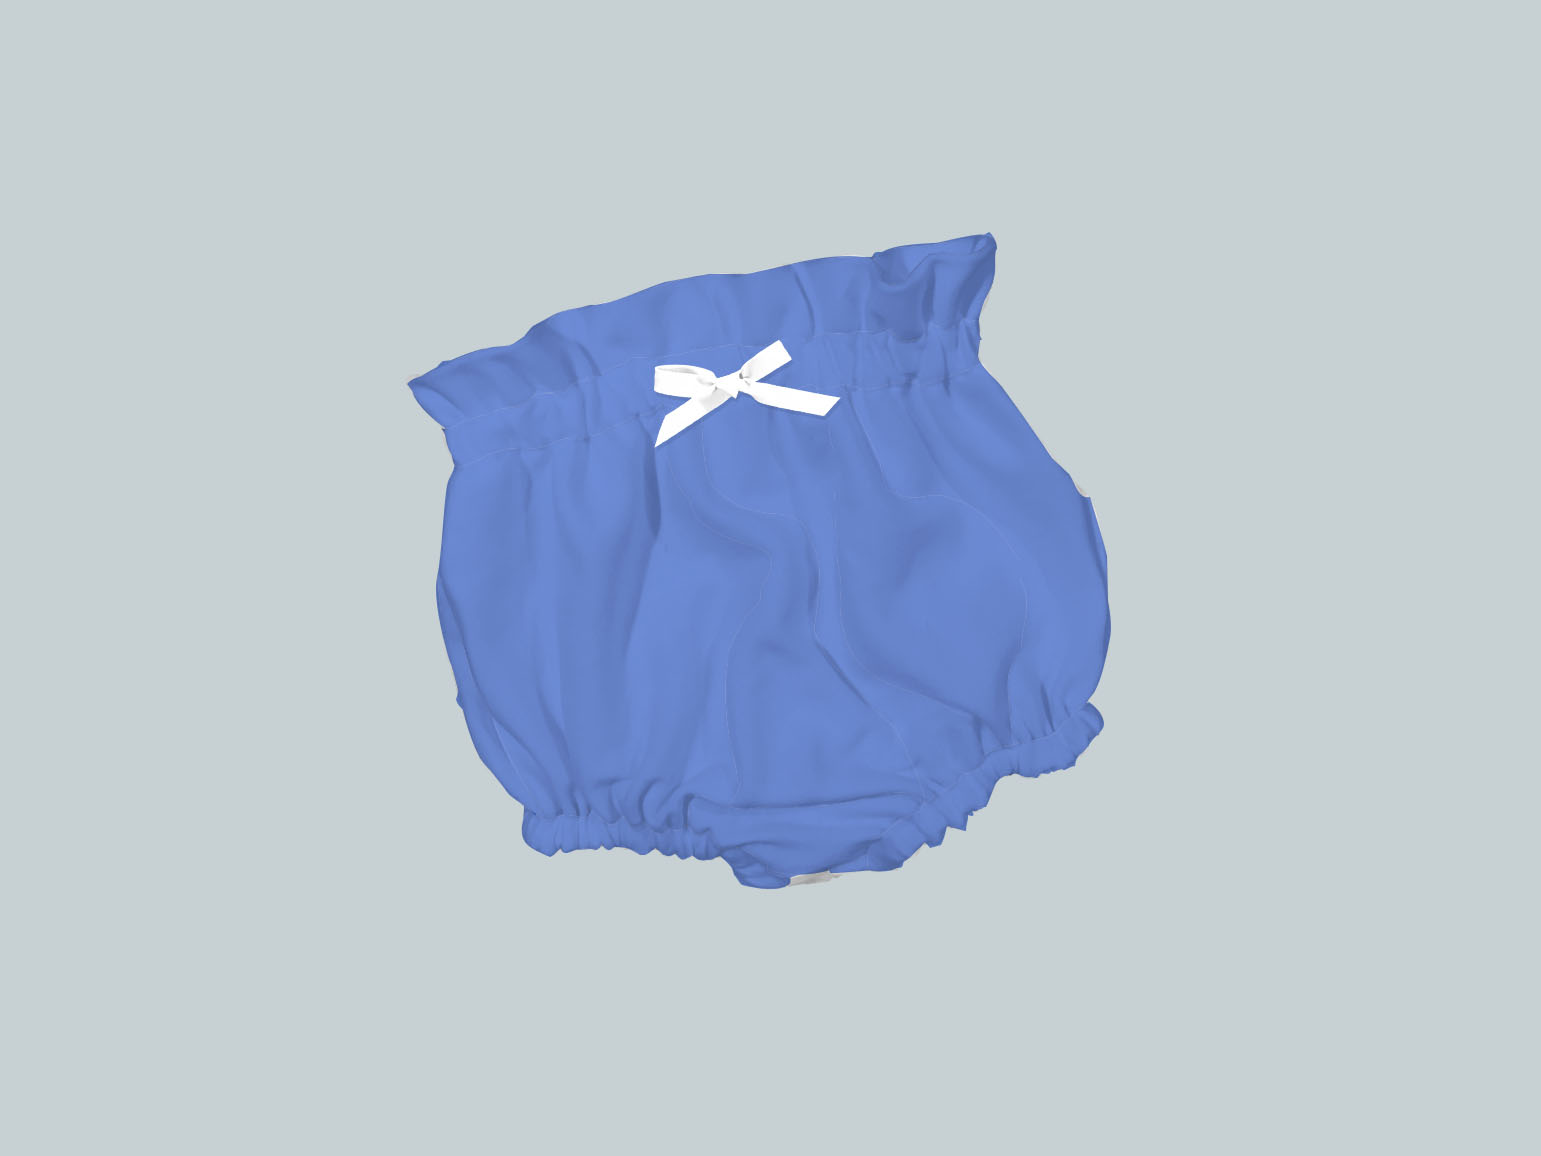 Bummies/High Waisted Bloomers - Periwinkle